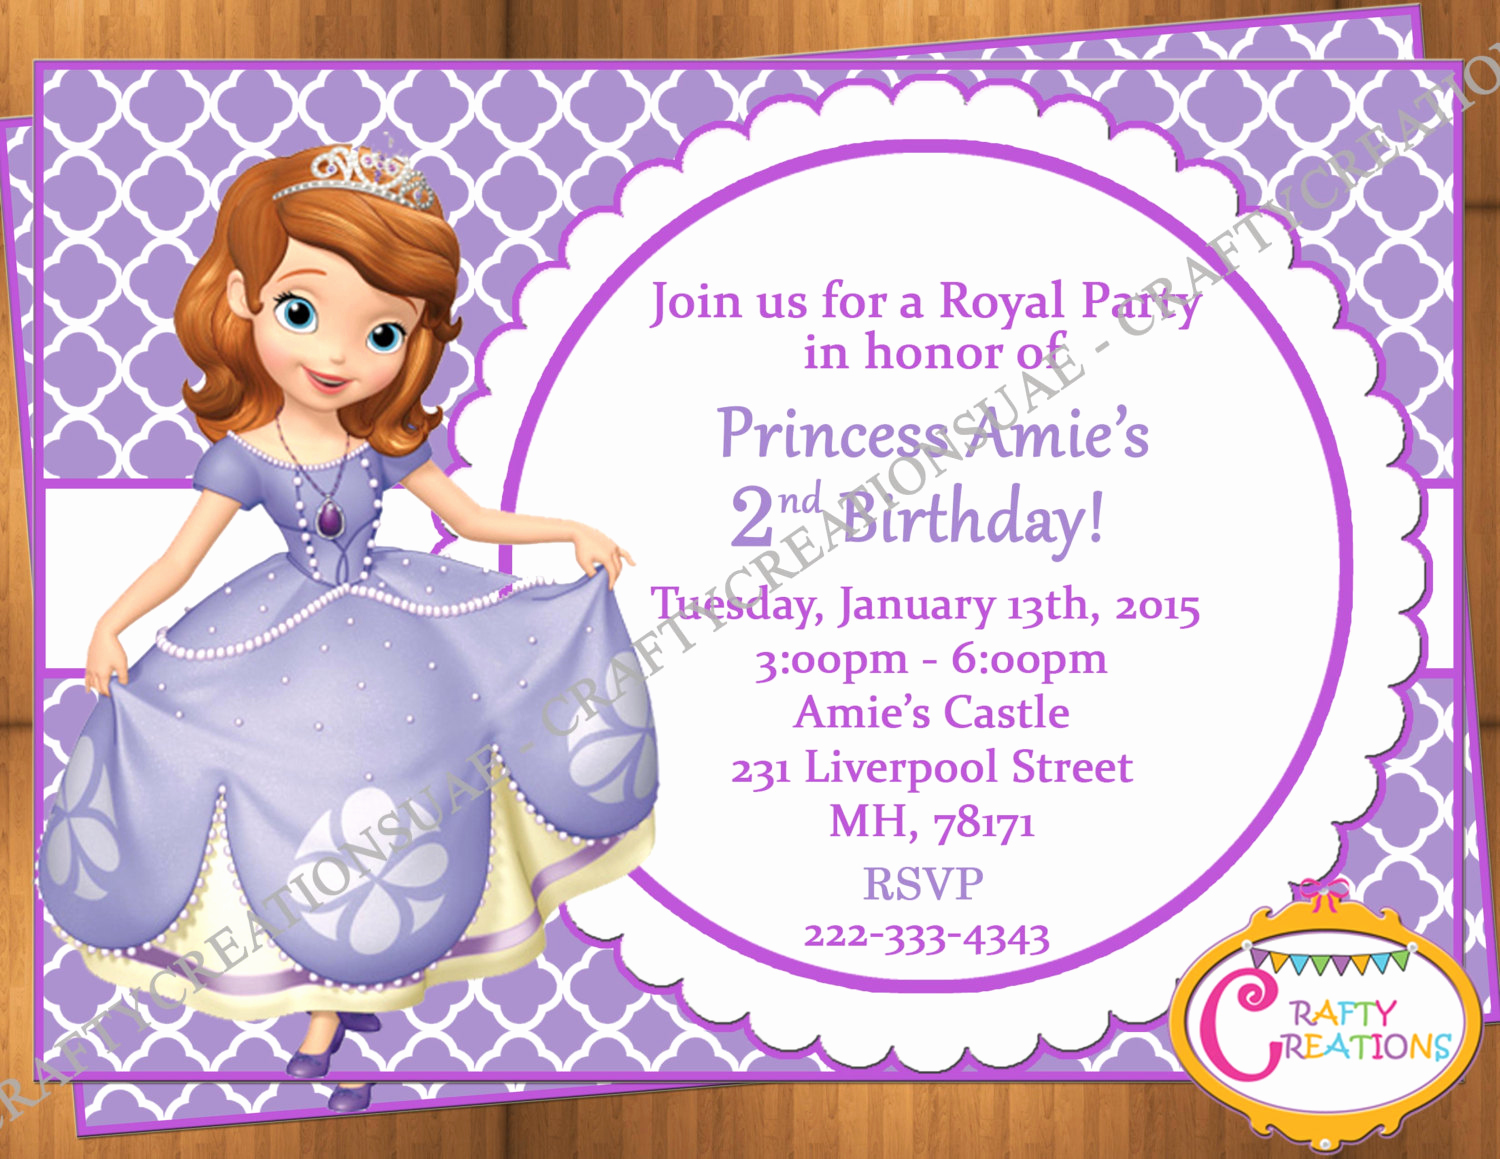 Sofia the First Invitation New sofia the First Invitation Princess sofia Birthday Party